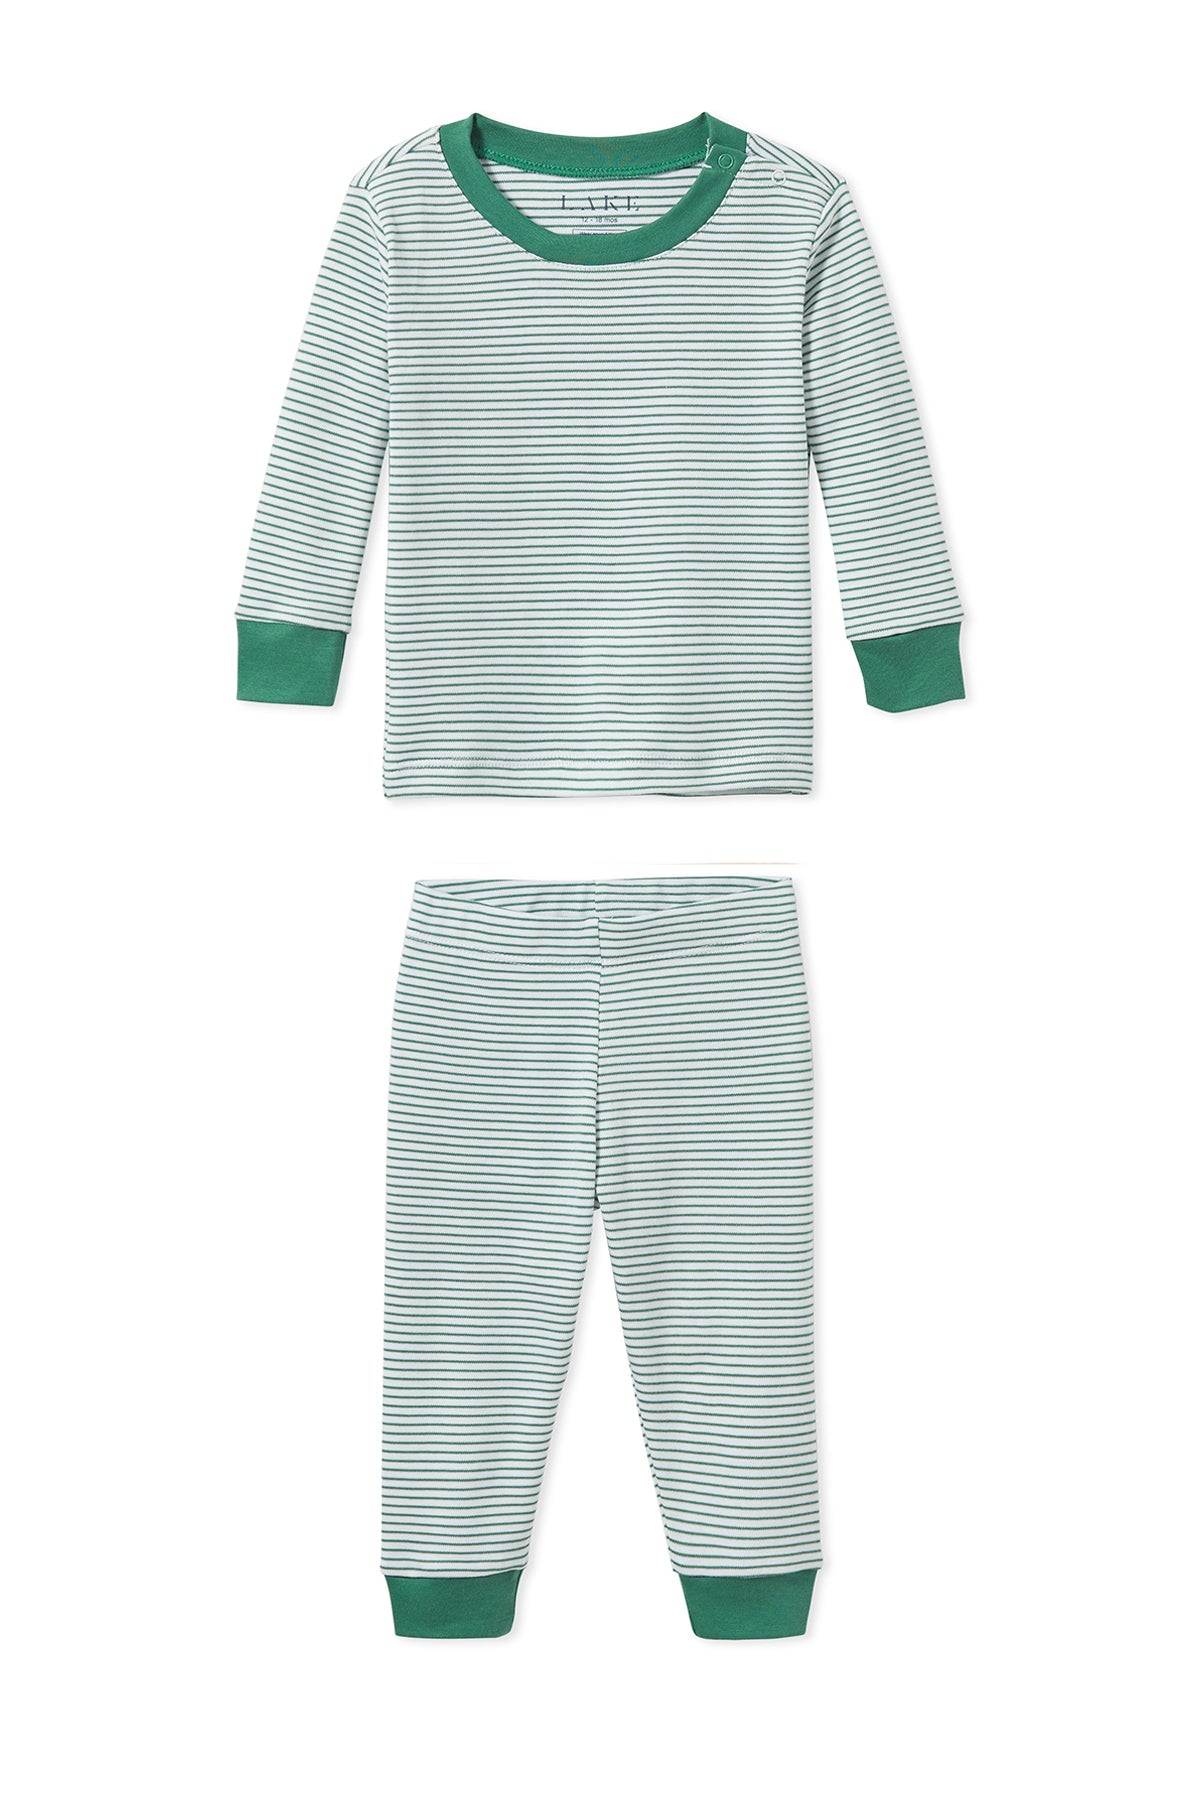 Baby Long-Long Set in Classic Green